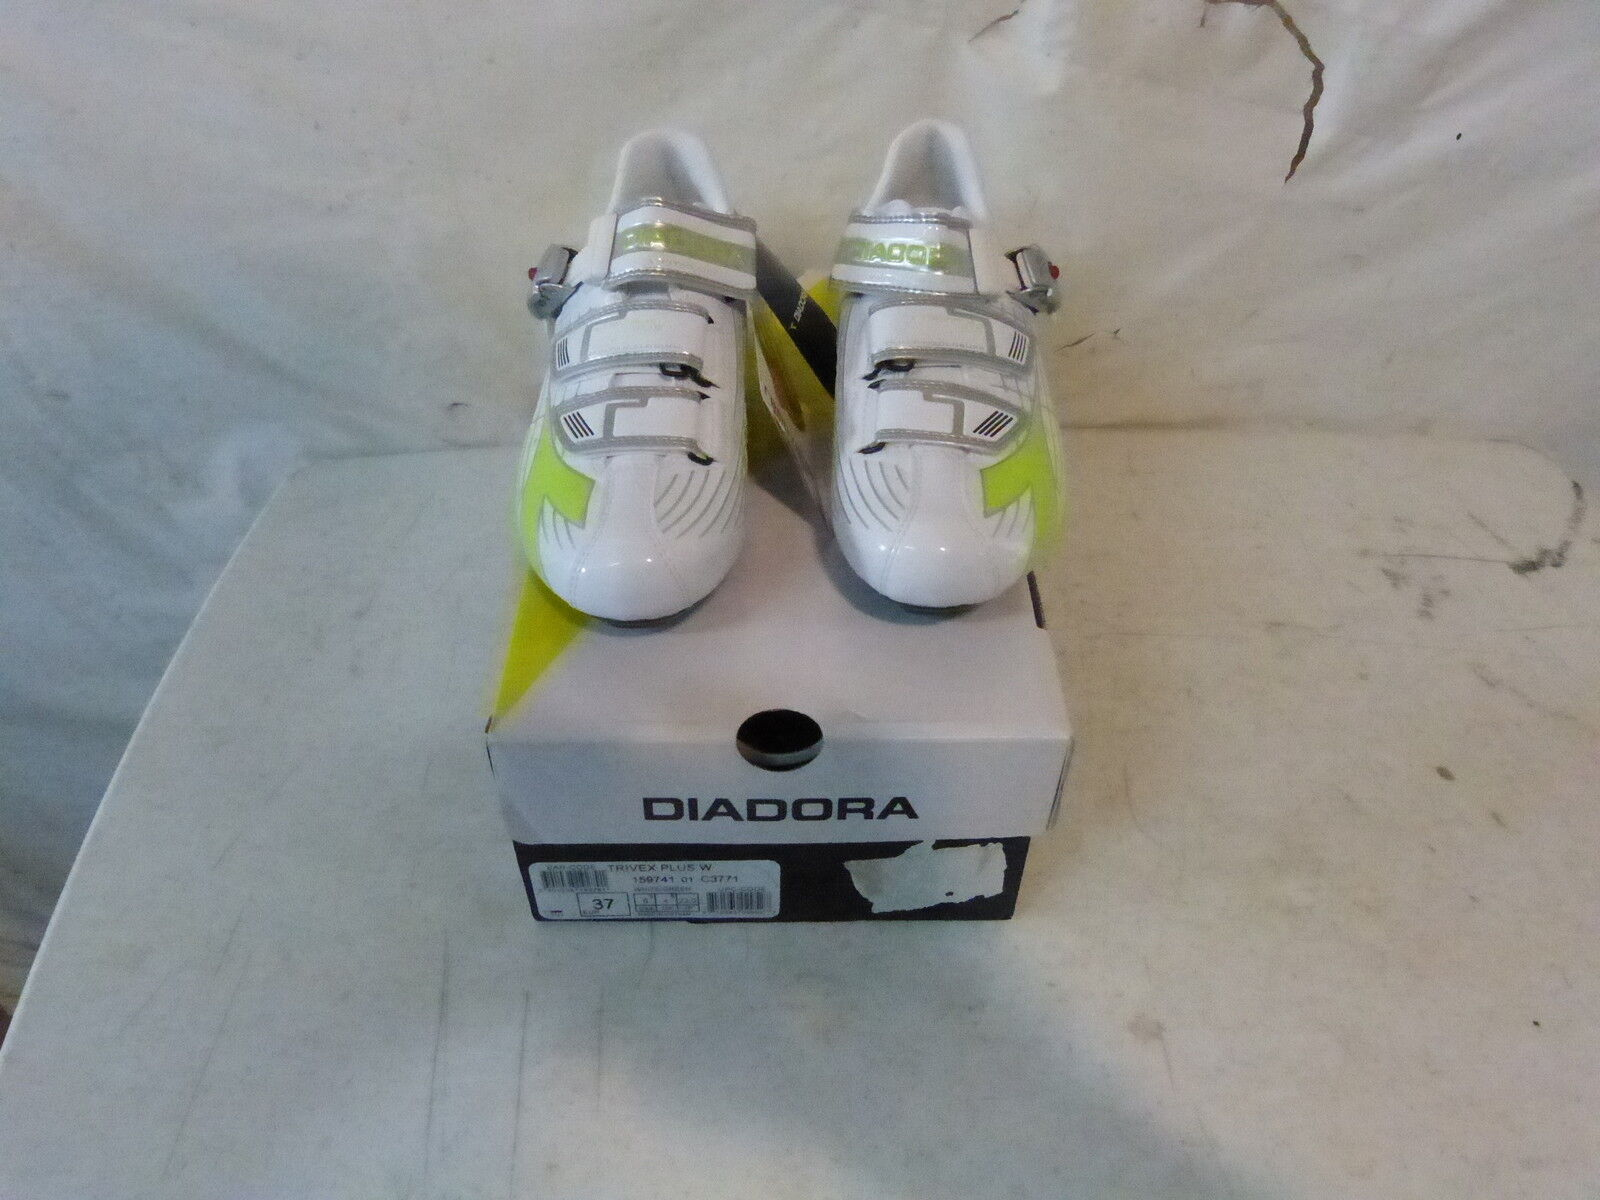 DIADORA  WOMEN'S TRIVEX PLUS ROAD BIKE SHOES US 6.5 White Green Retail  140  2018 latest